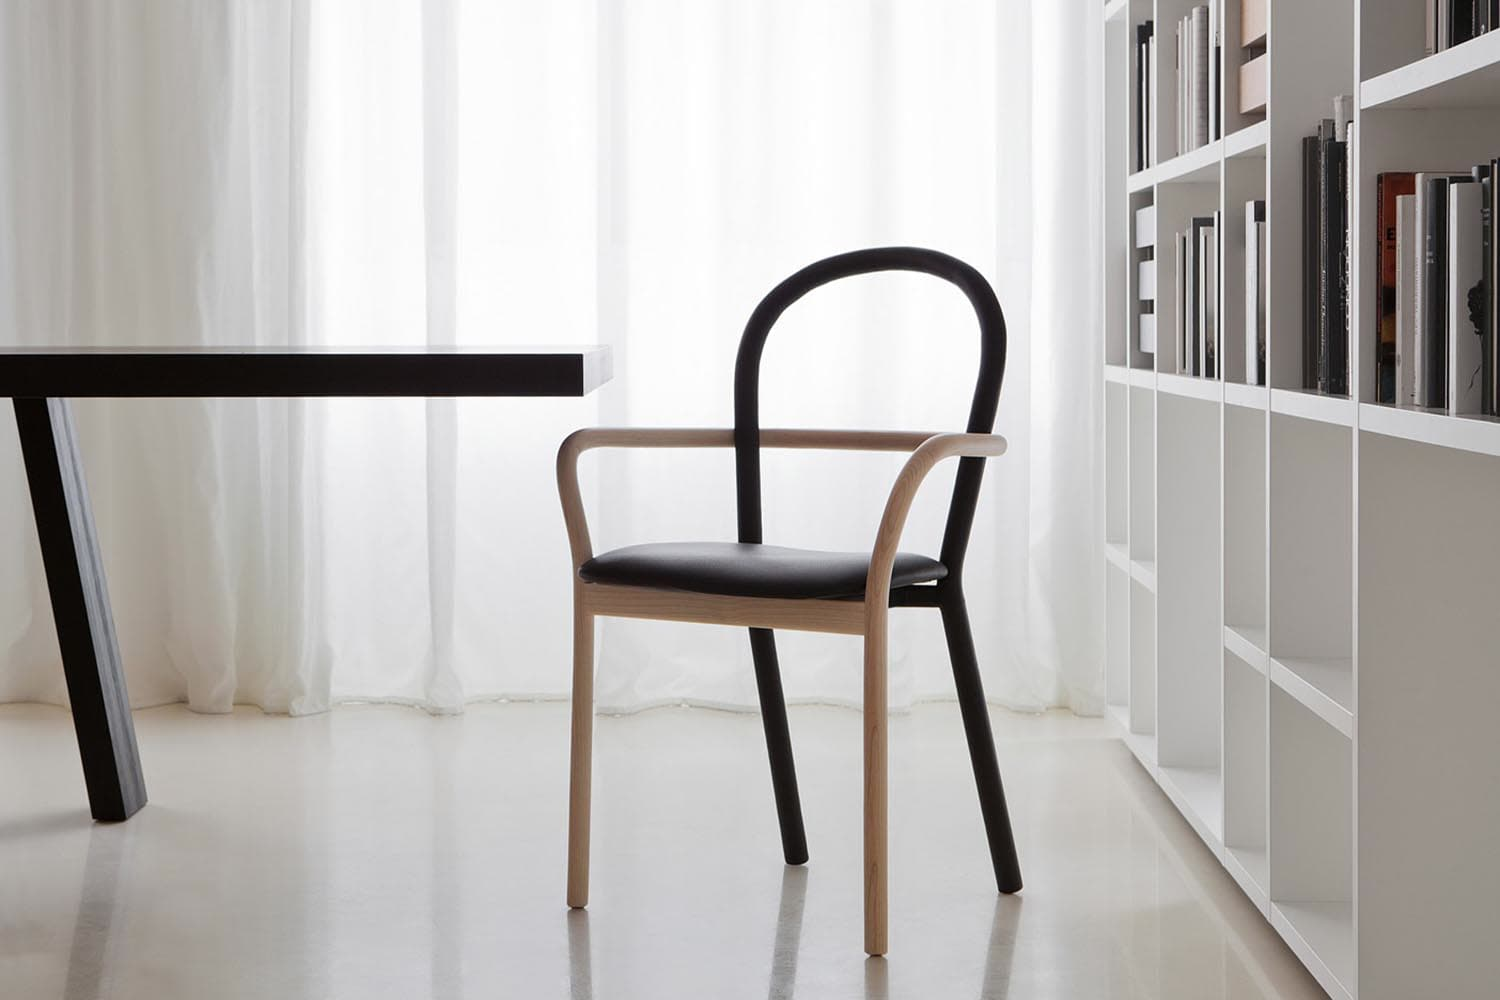 The Gentle chair by Front for Porro.